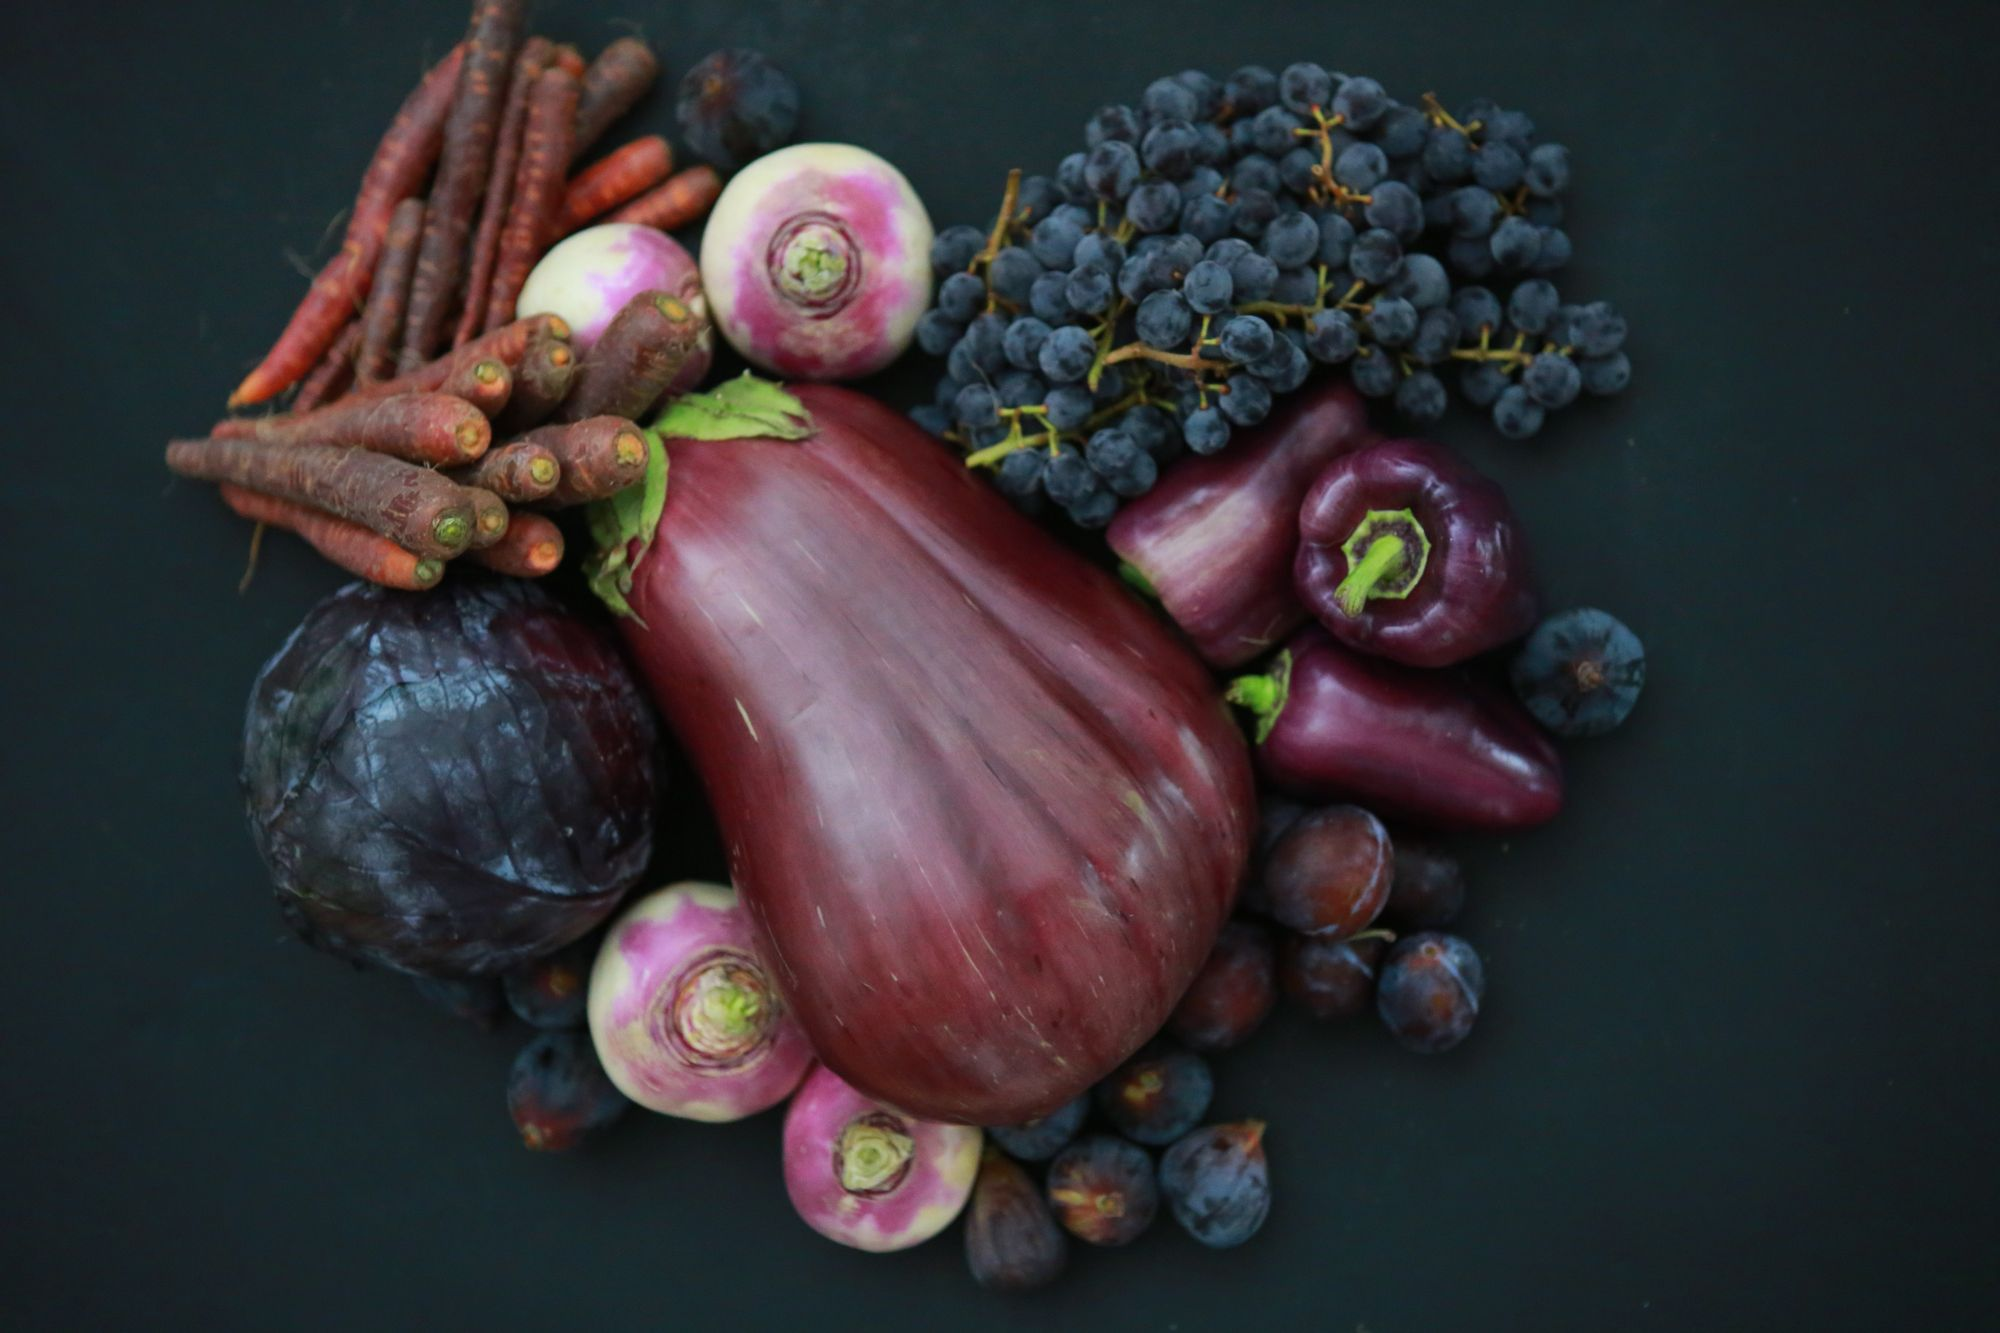 Healthy purple foods include eggplant, beets, and berries by kristen-kaethler